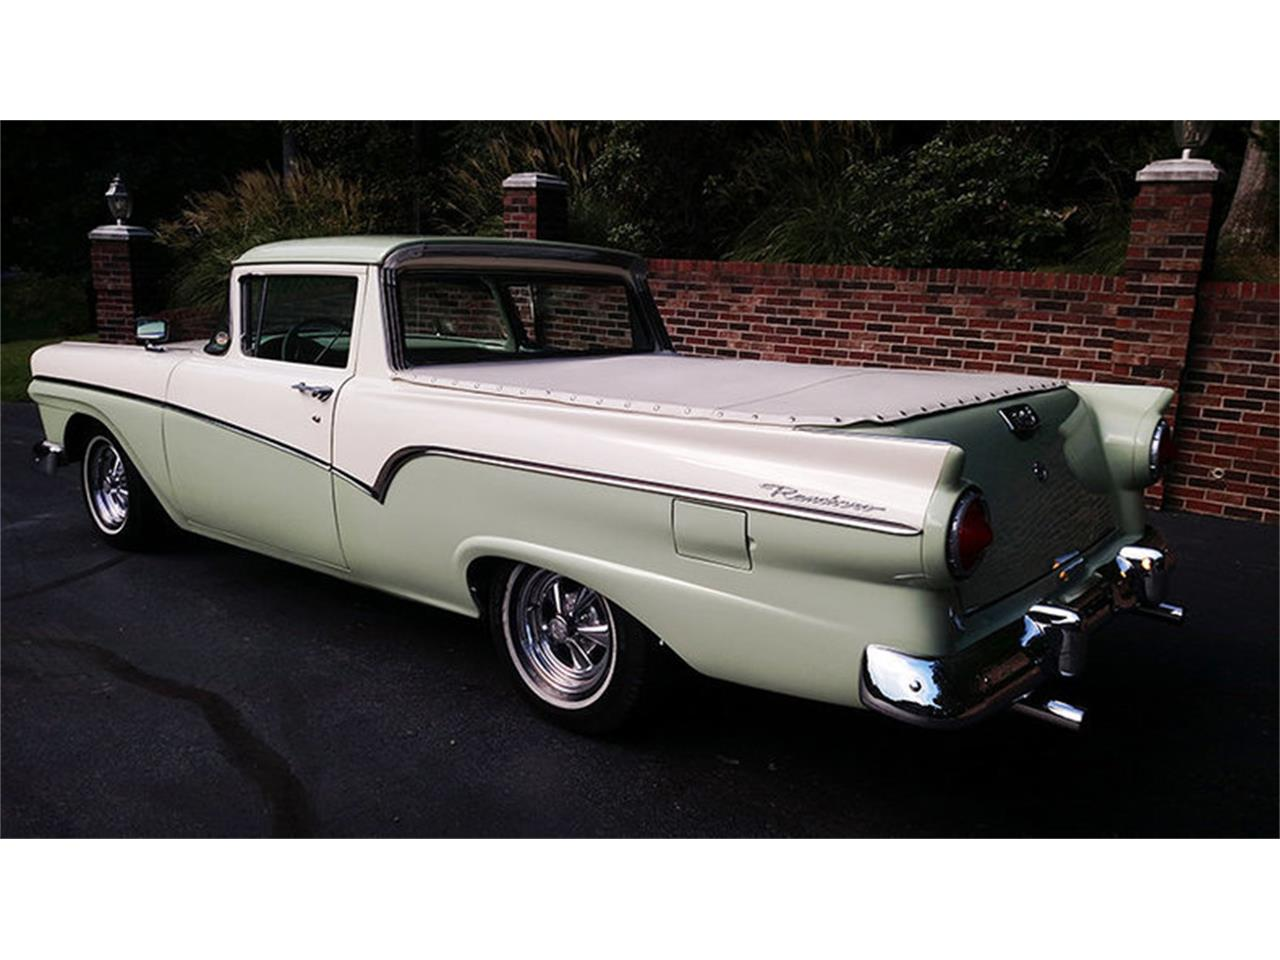 Large Picture of Classic '57 Ford Ranchero located in Huntingtown Maryland - $18,900.00 - OH2S